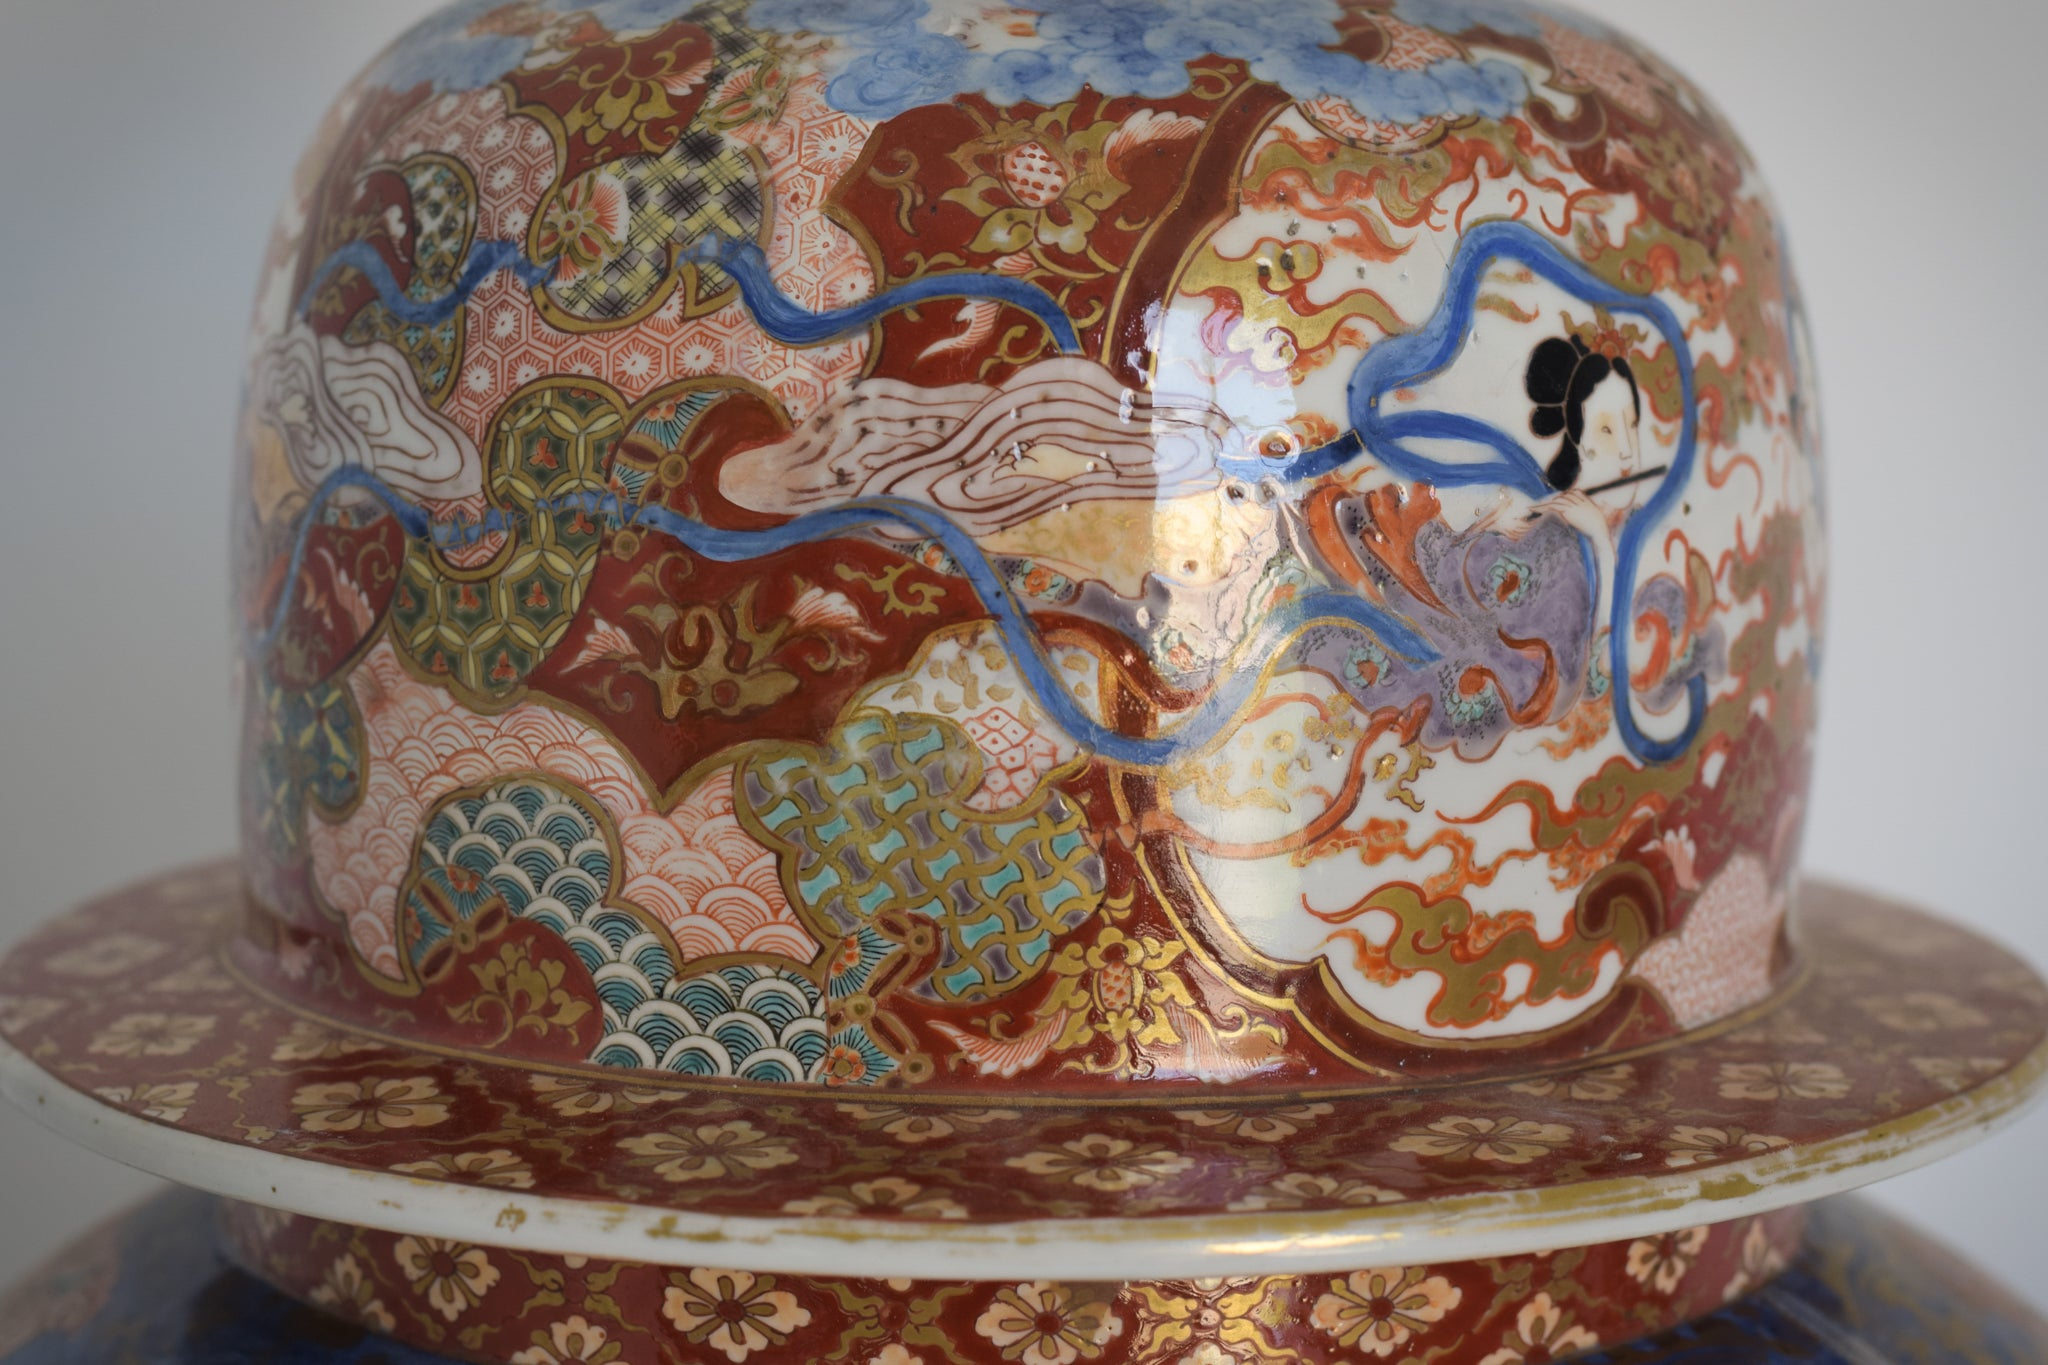 Large Arita Jar and Lid decorated with images of Samurais and Geishas_Detail 8